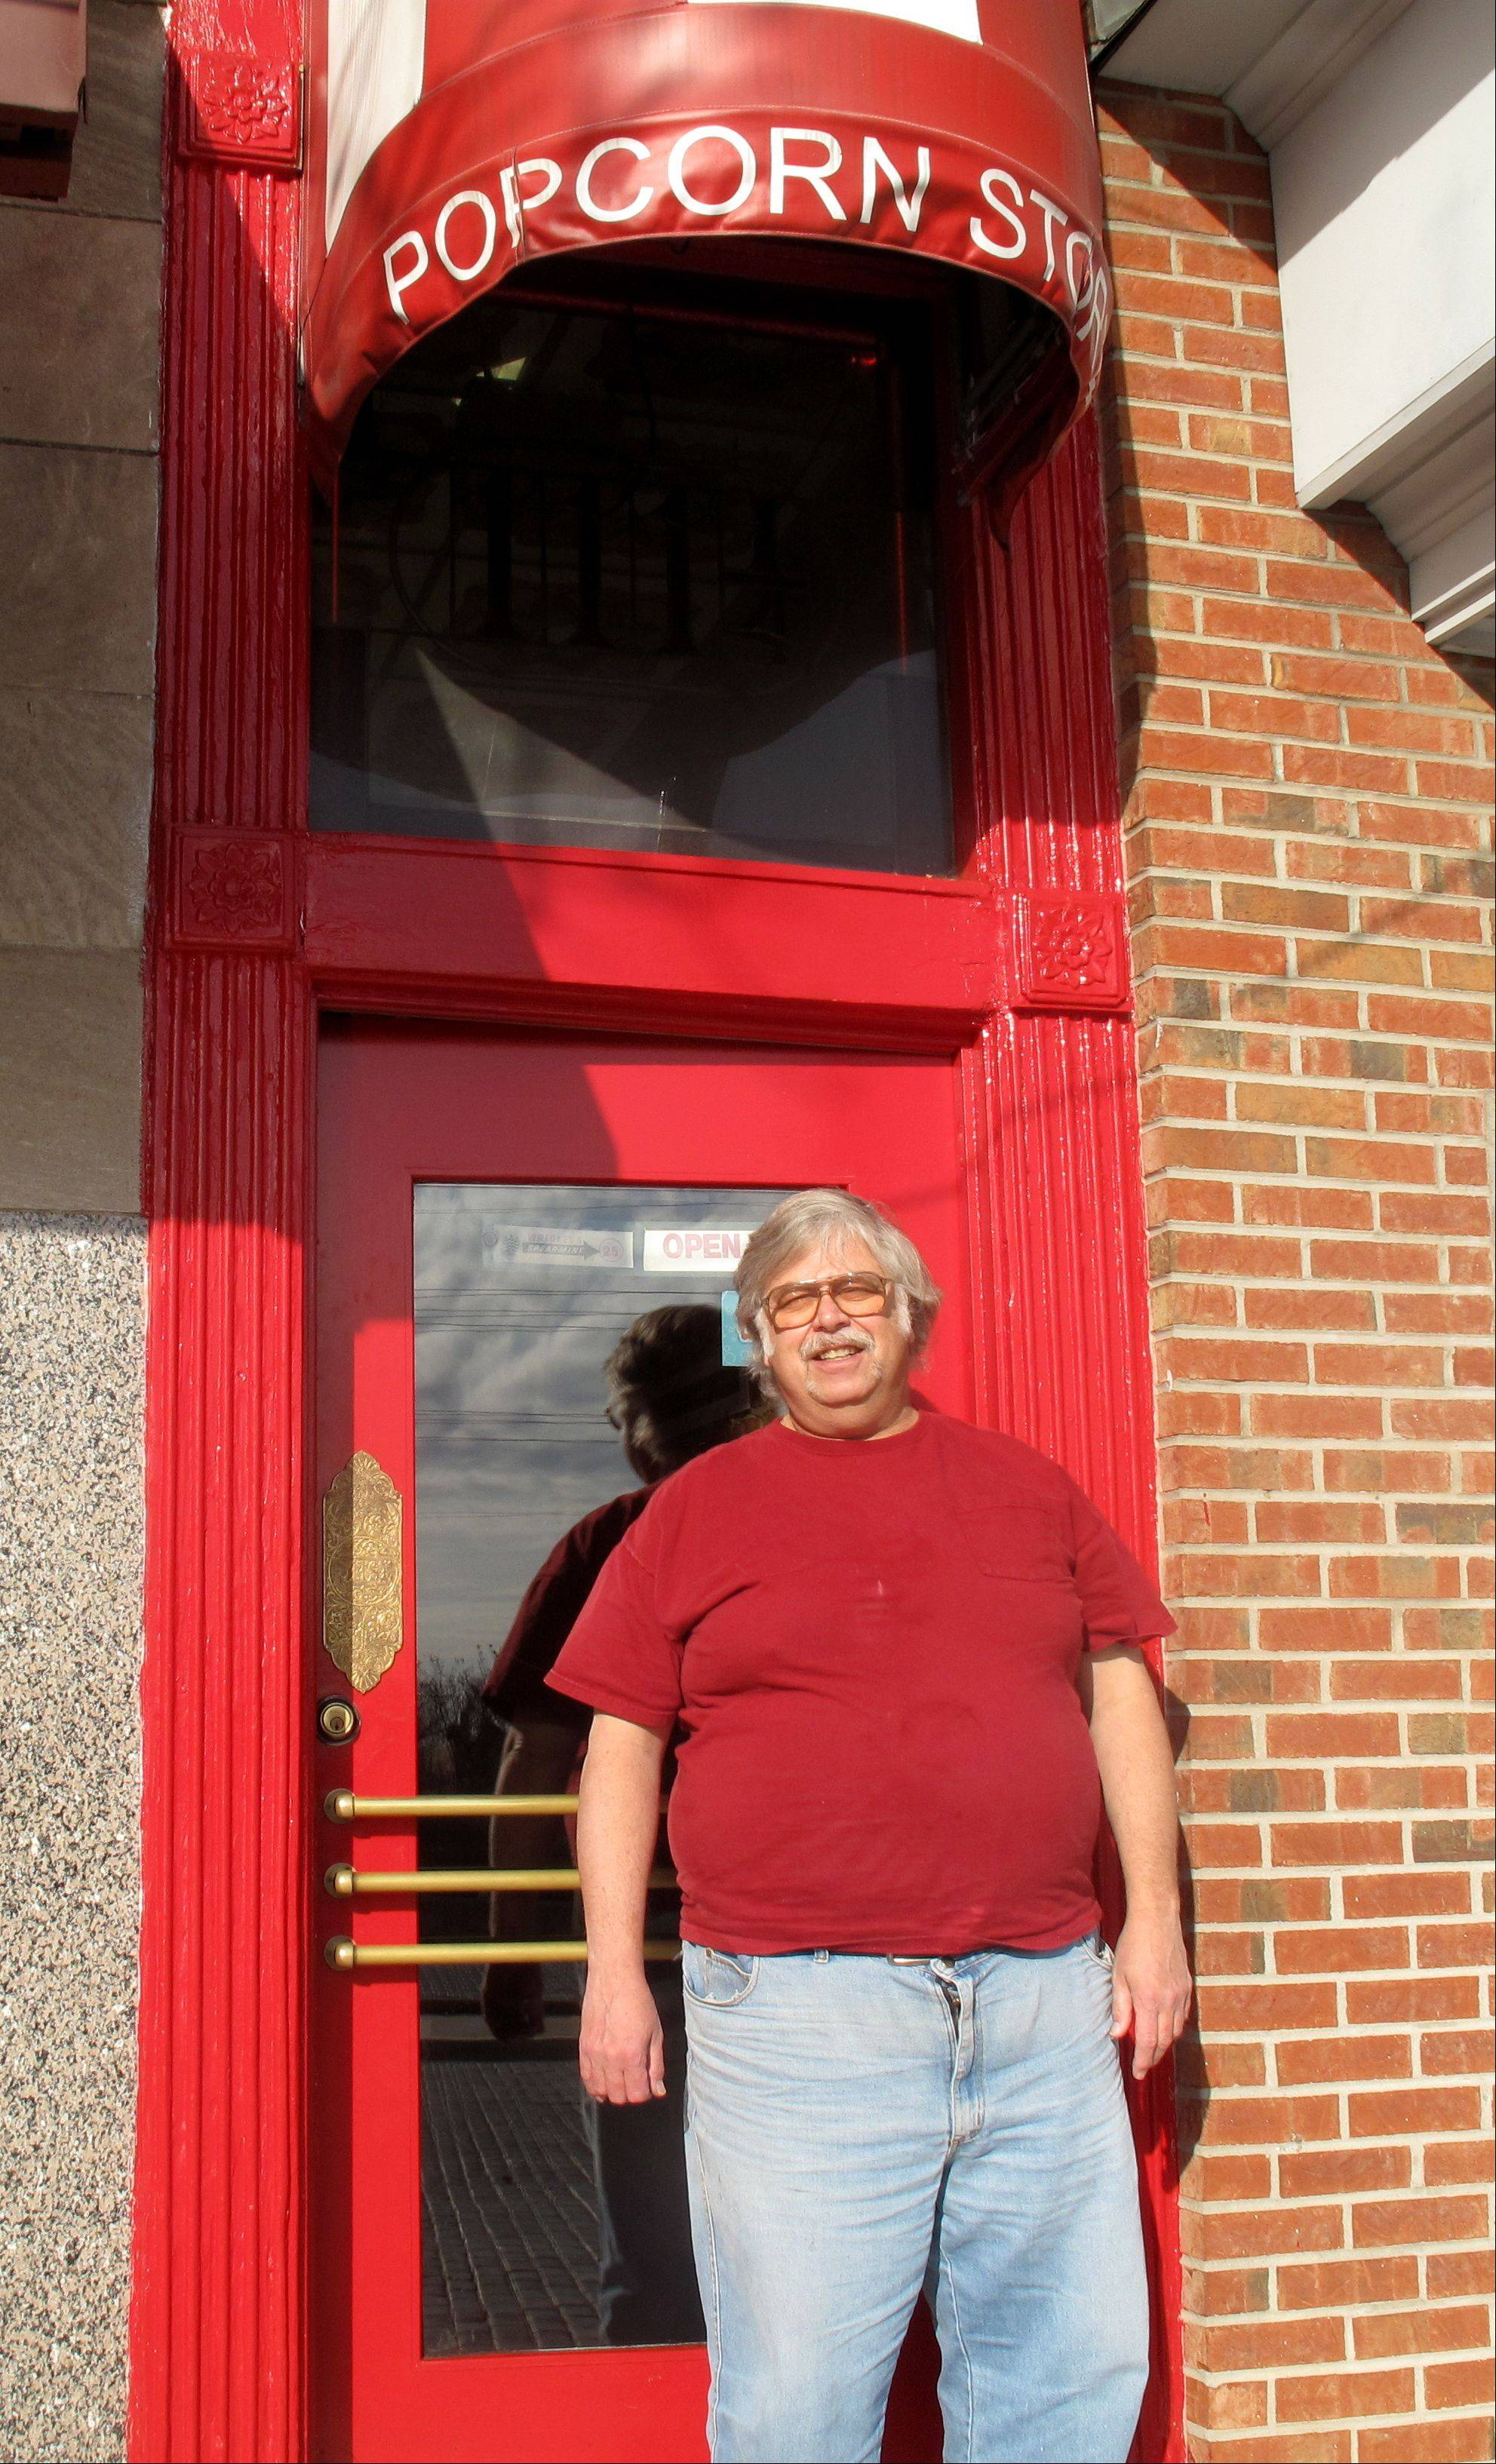 Owner Bill Wakefield in front of the narrow door that leads into the Little Popcorn Store.